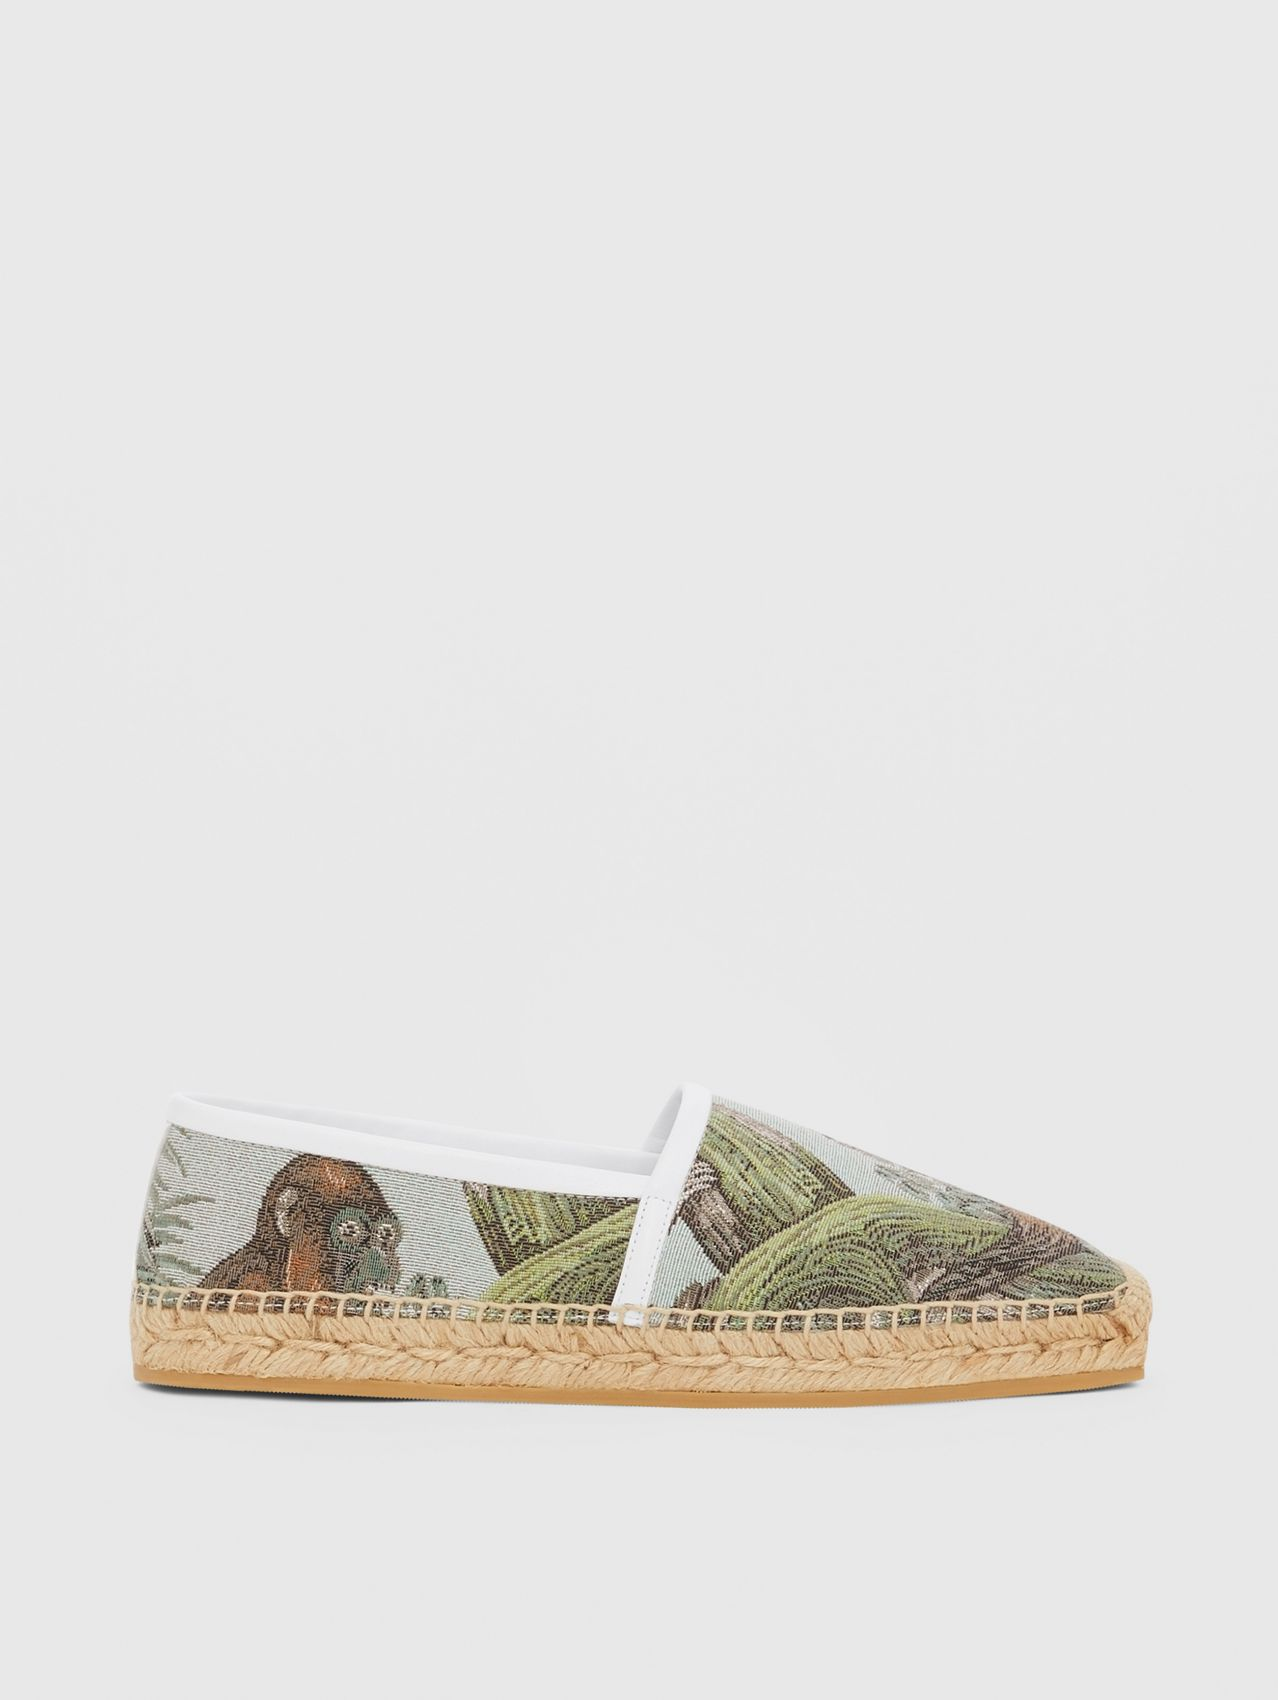 Monkey Jacquard and Leather Espadrilles (Black/opal Green)